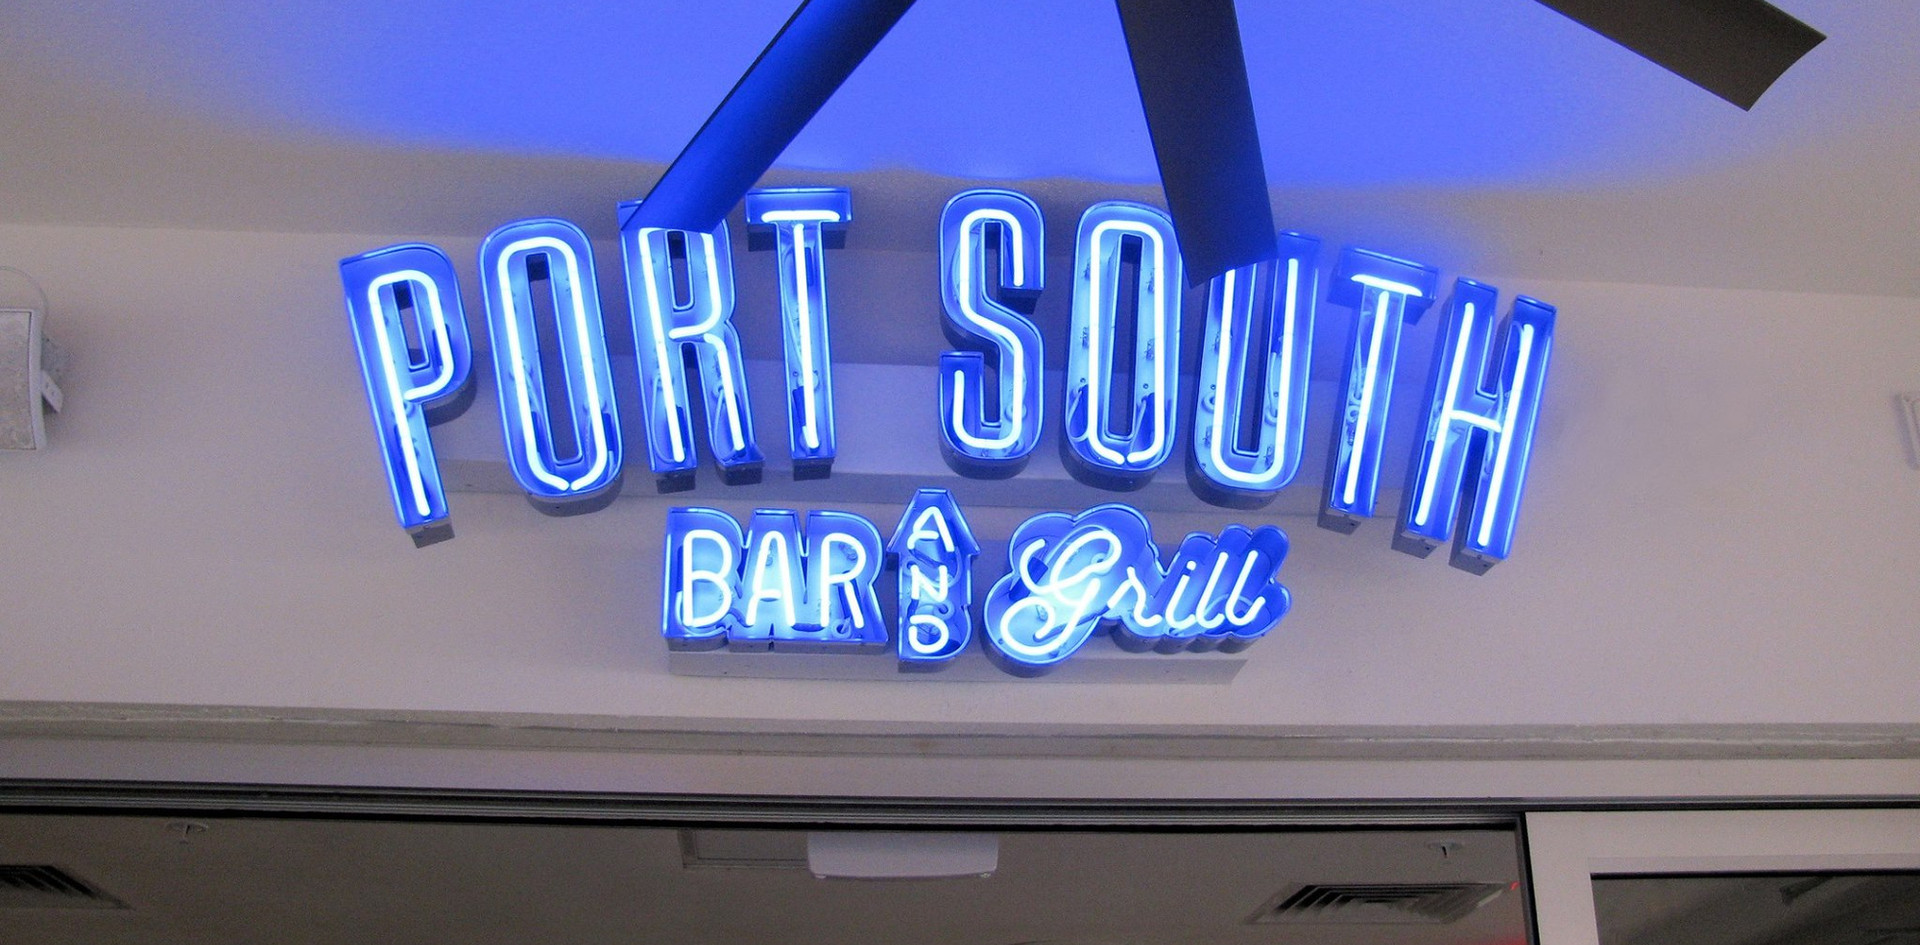 PORT SOUTH_NEON SIGN.jpg